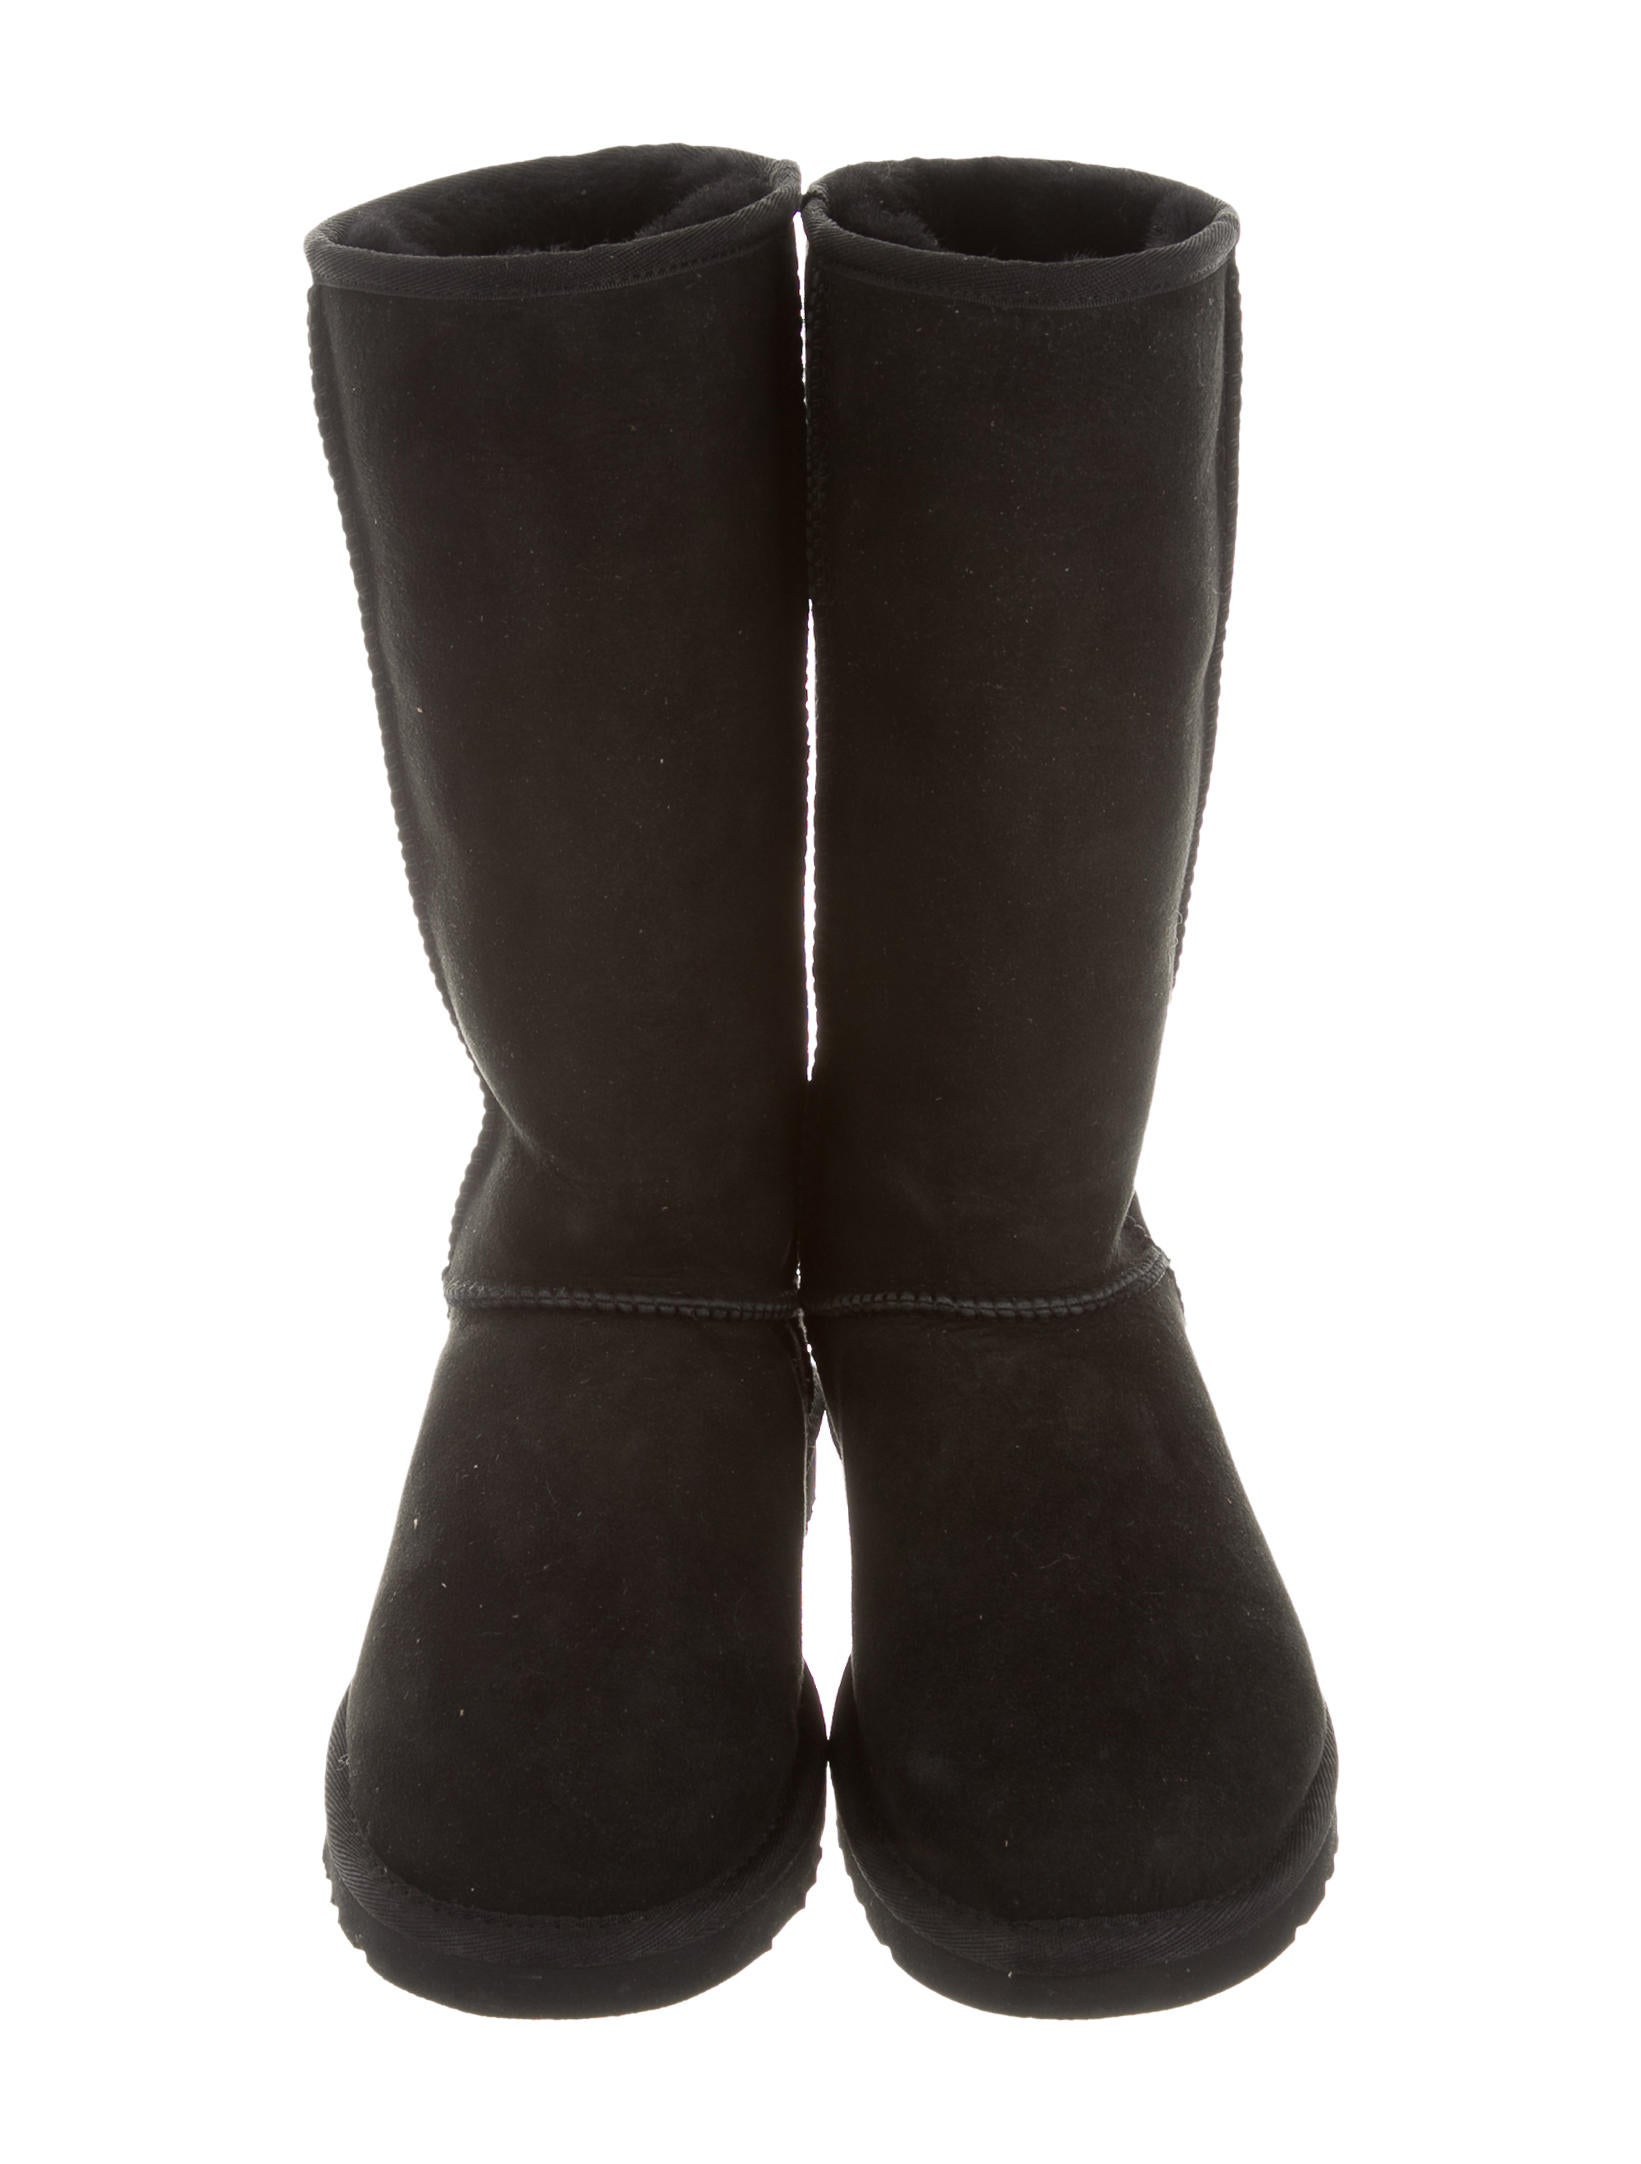 296799ff2054 Tall Uggs With Rubber Sole - cheap watches mgc-gas.com